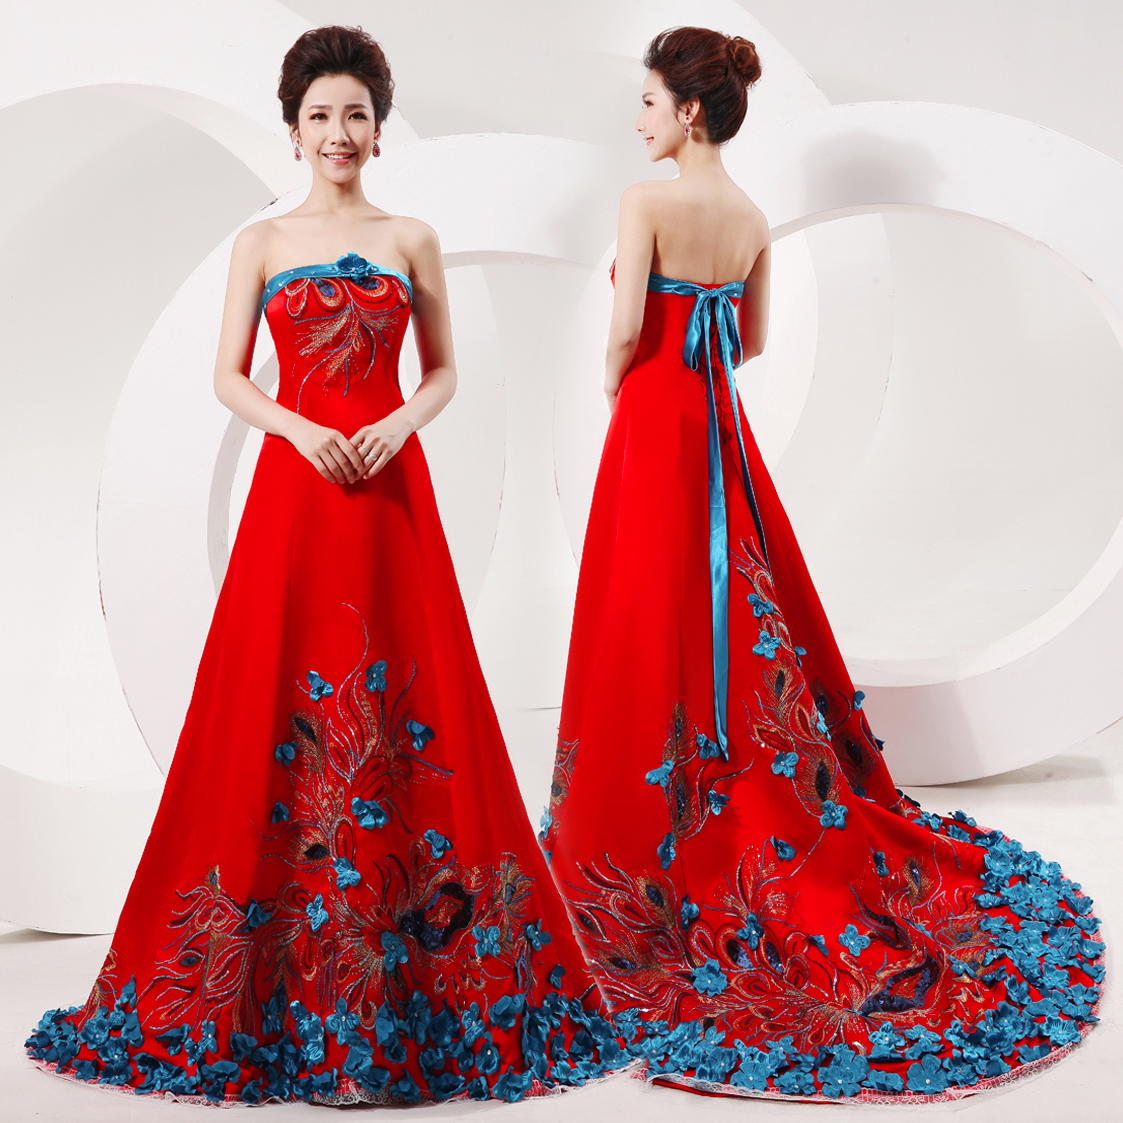 351b742e4c Strapless blue and red embroidered peacock feather evening gown Chinese  silk satin bridal wedding trailing dress